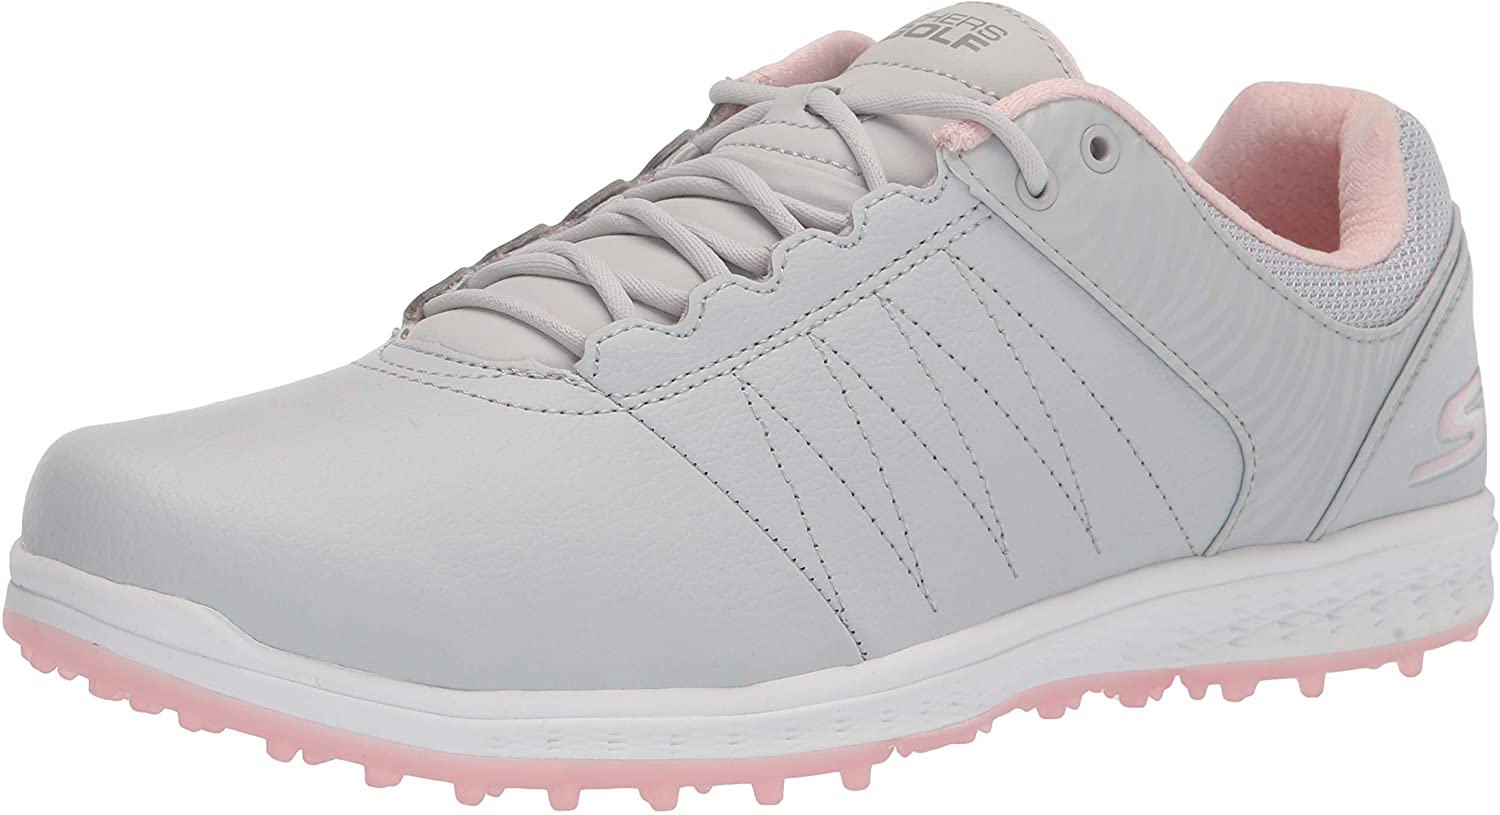 Skechers Sales of SALE items from new Selling rankings works Women's Go Pivot Golf Spikeless Shoe